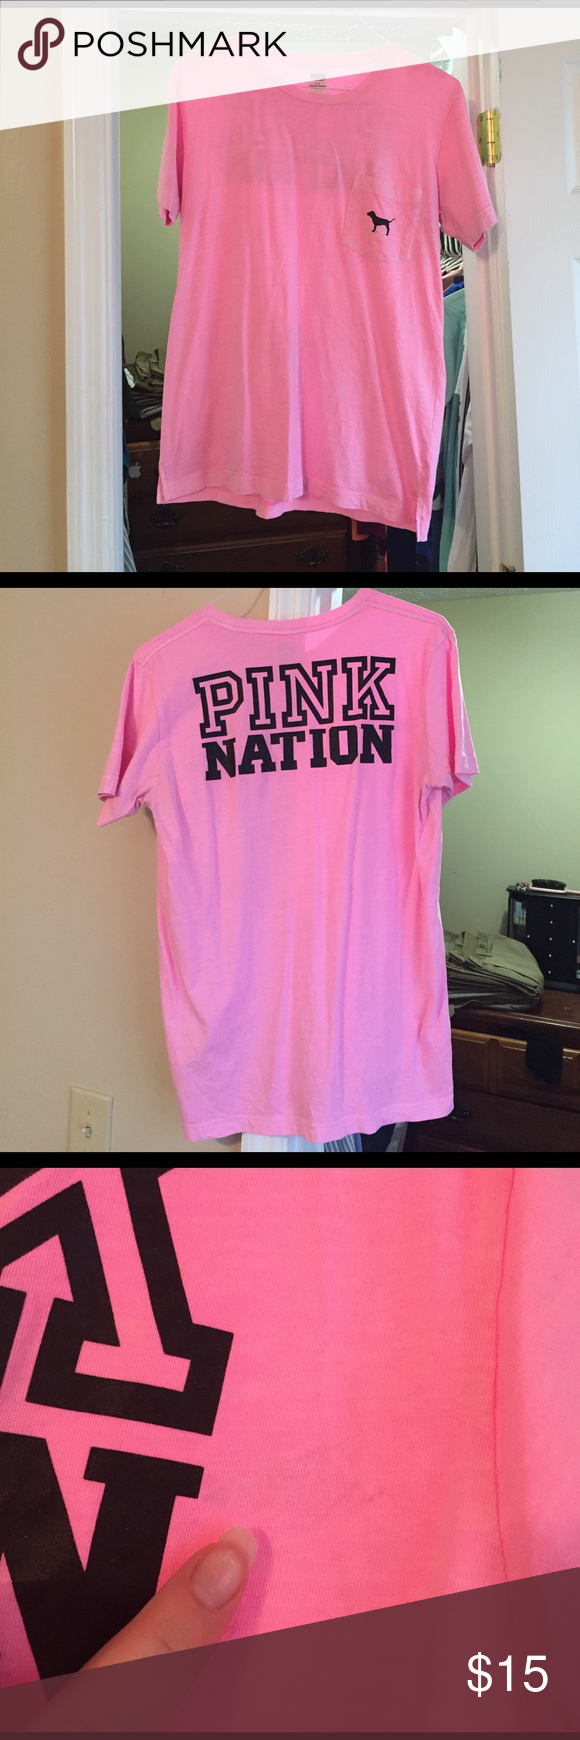 Campus T-shirt Light pink short sleeve with black dog on front pocket and Pink nation written on back. One very faint small stain next to the pink nation. Pictured above. Light fading. Slightly oversized. PINK Victoria's Secret Tops Tees - Short Sleeve